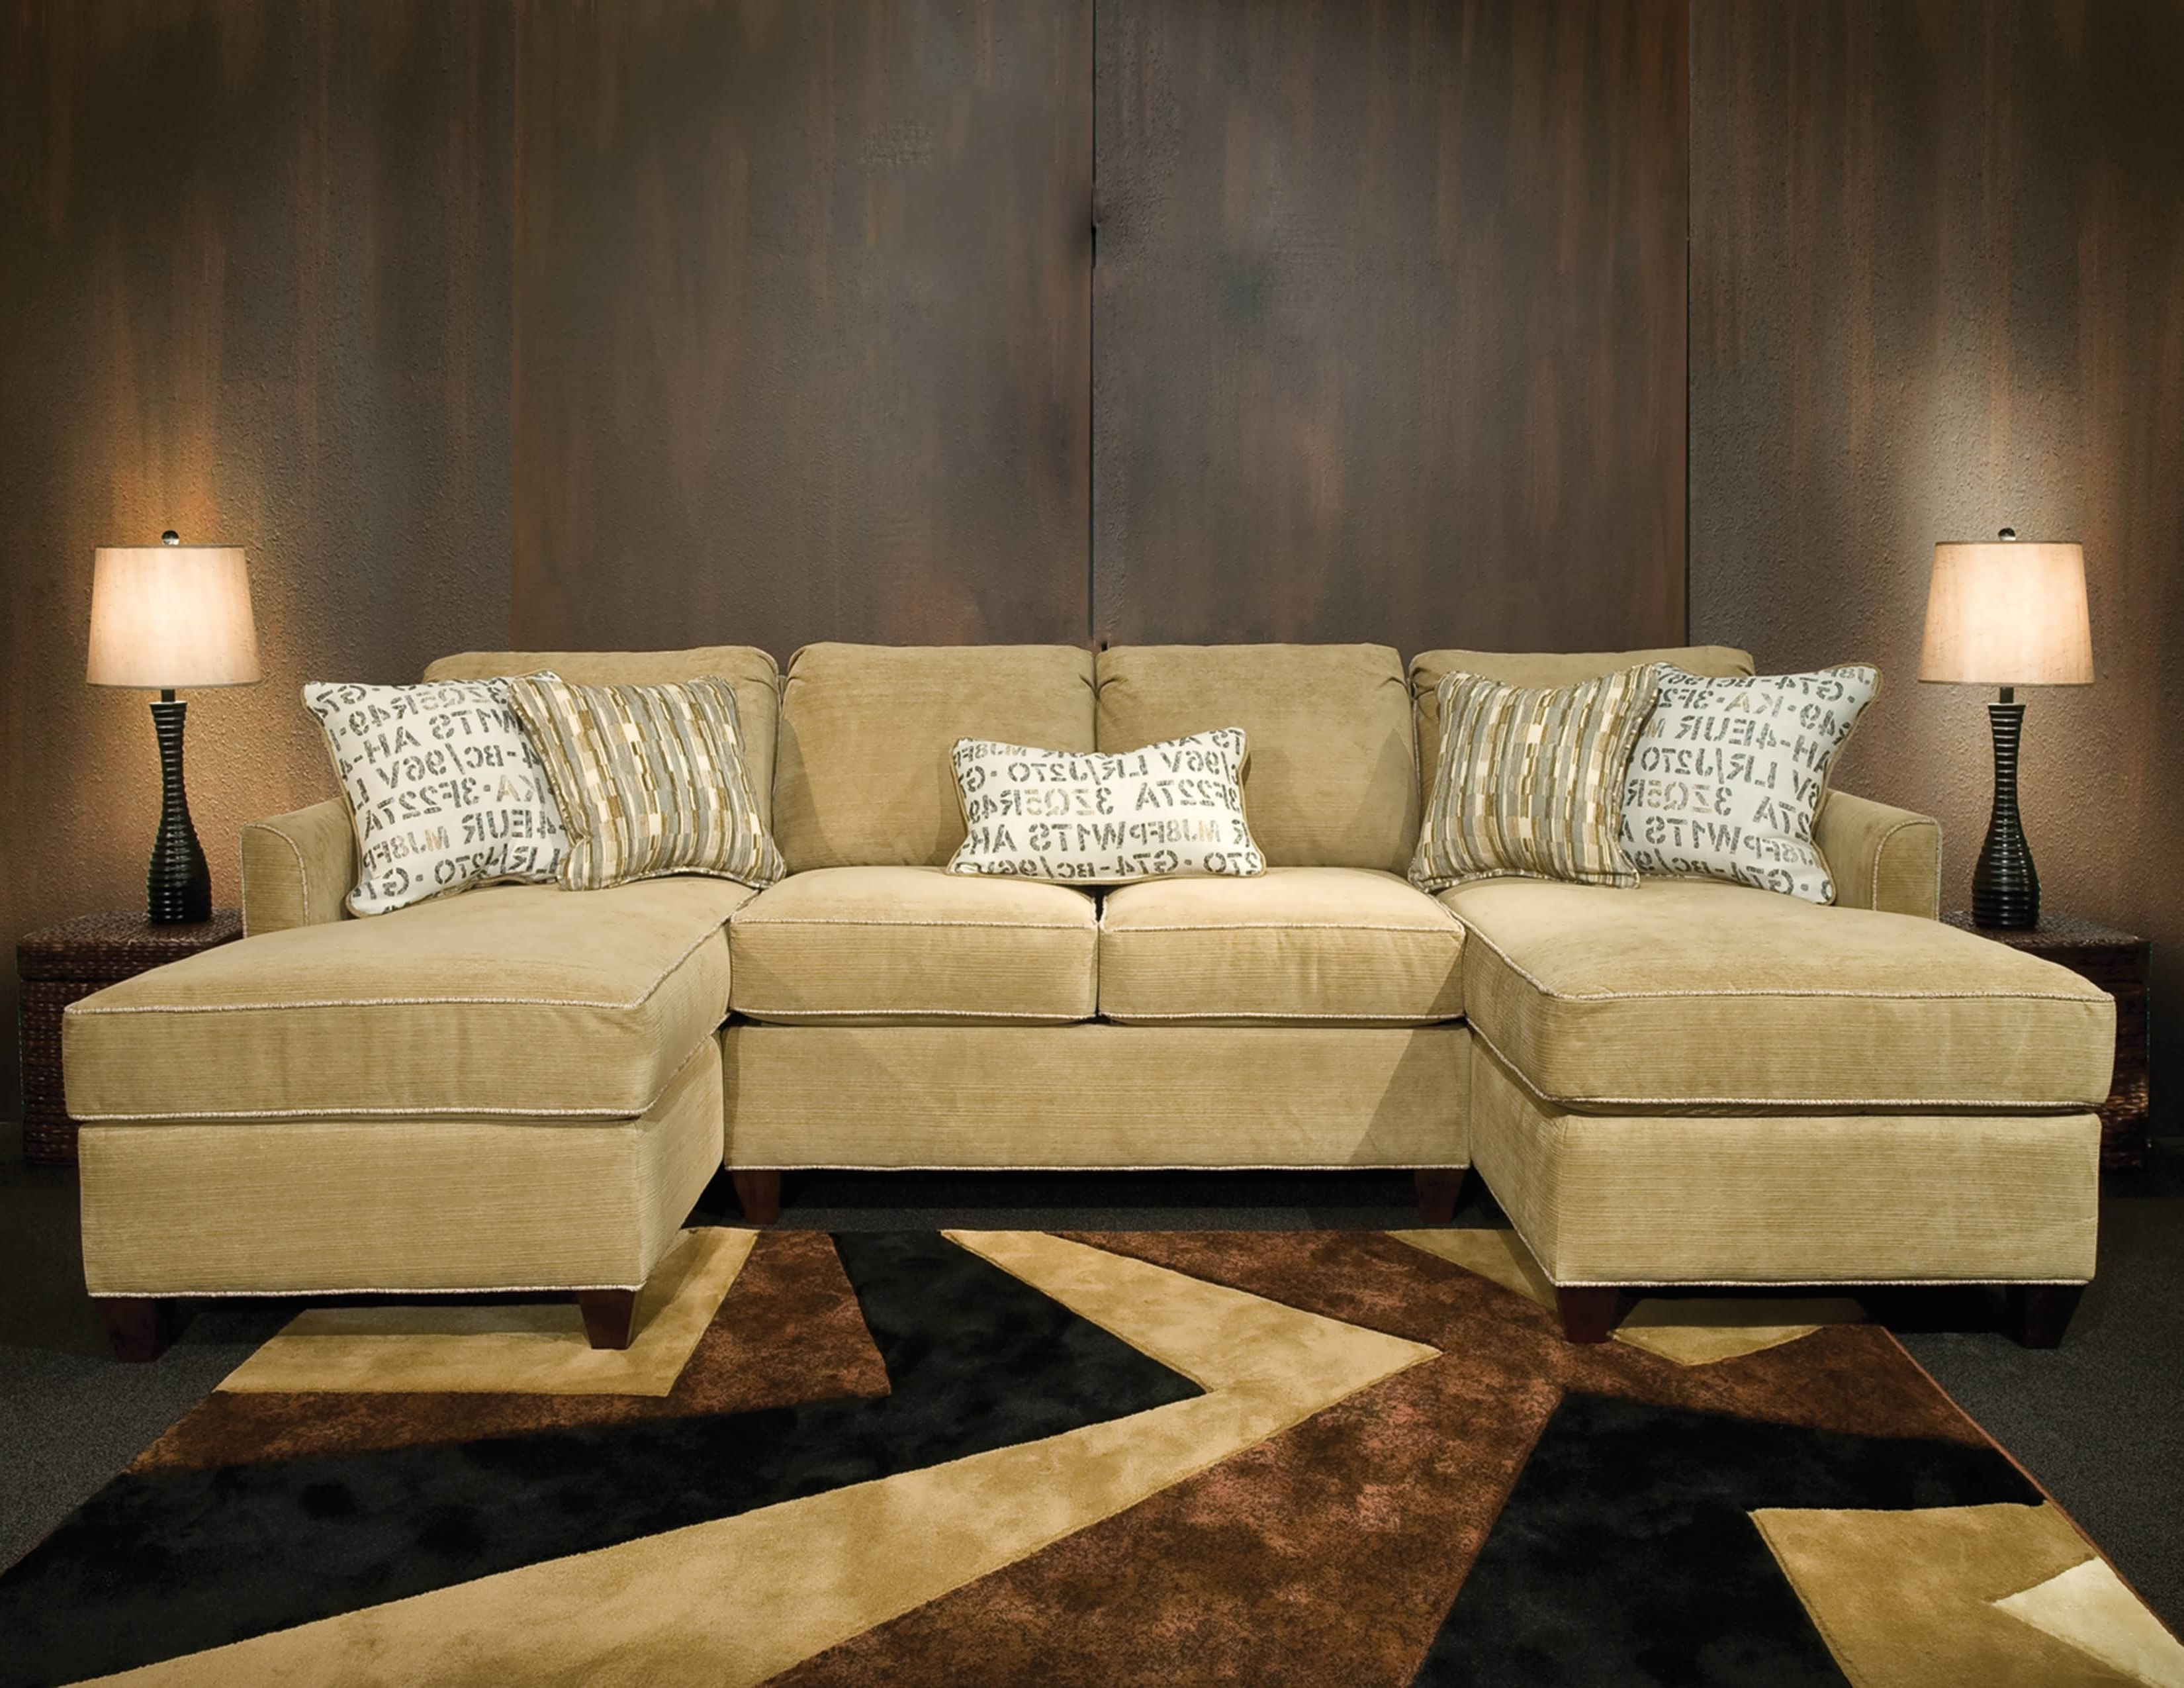 Well Known Sofa : Extra Large Sectional Sofas With Chaise Small Sectional With Small Sectional Sofas With Chaise Lounge (View 9 of 15)